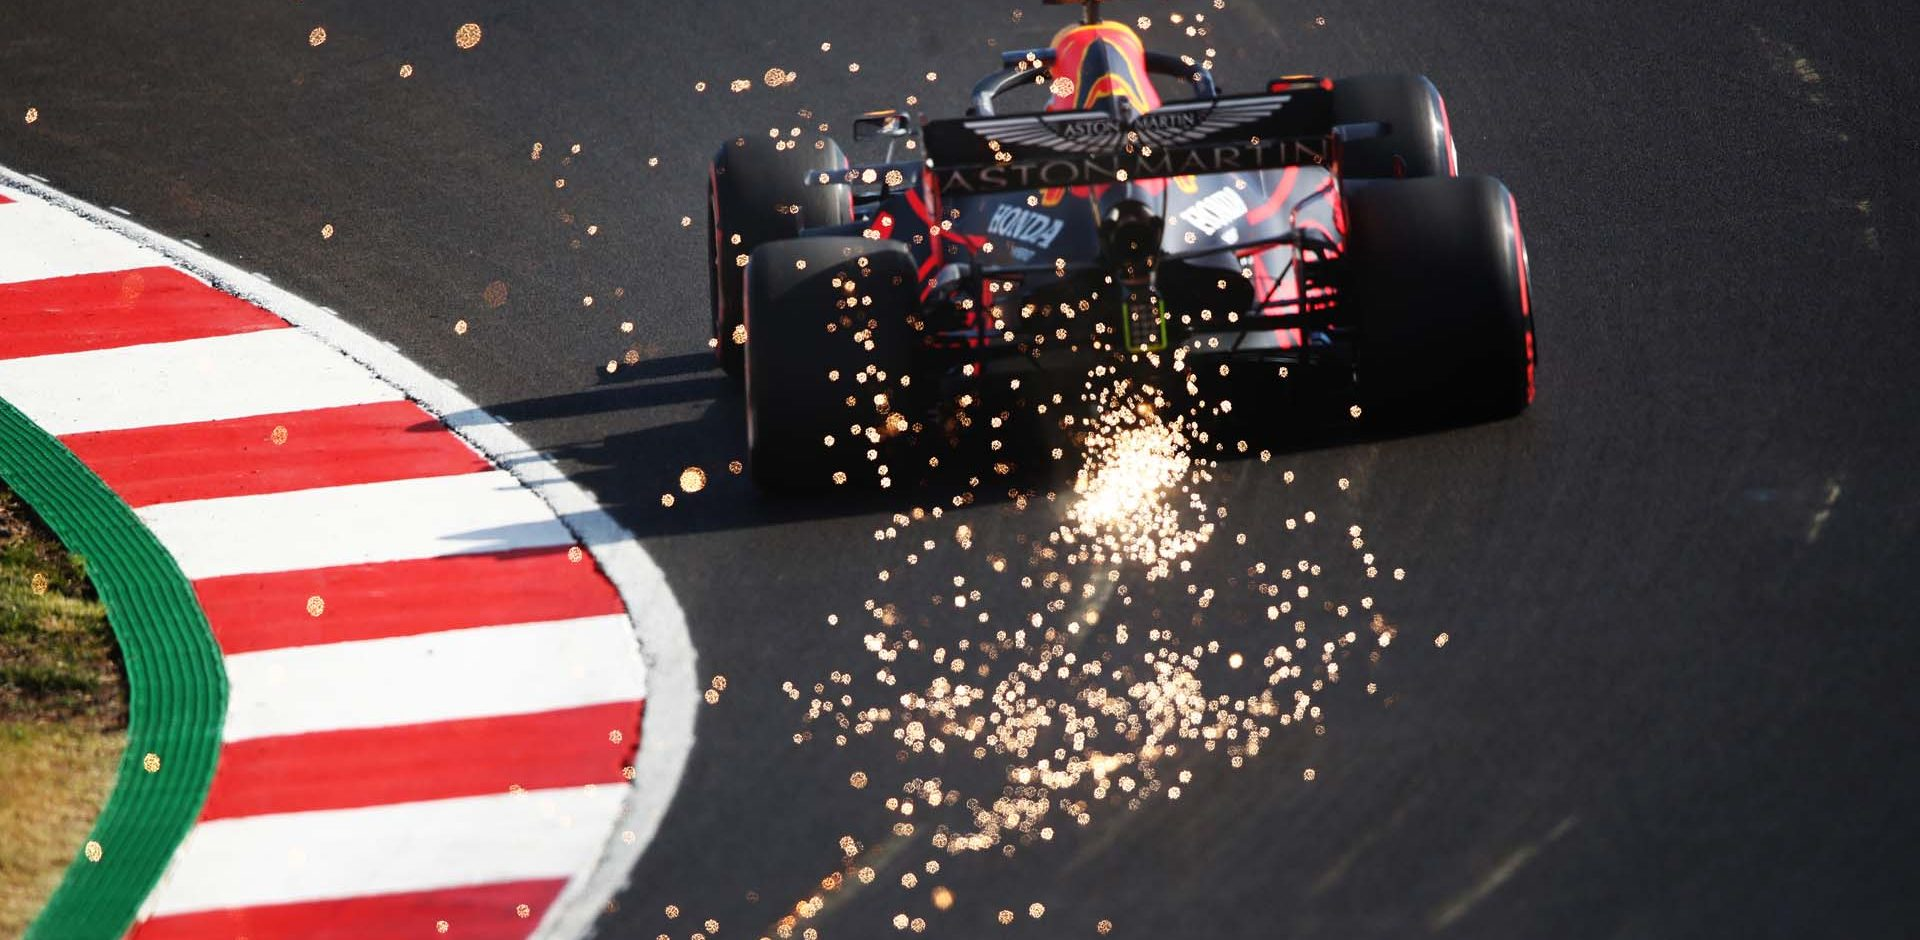 PORTIMAO, PORTUGAL - OCTOBER 24: Sparks fly from the car of Max Verstappen of the Netherlands driving the (33) Aston Martin Red Bull Racing RB16 during qualifying ahead of the F1 Grand Prix of Portugal at Autodromo Internacional do Algarve on October 24, 2020 in Portimao, Portugal. (Photo by Joe Portlock/Getty Images) beatuy